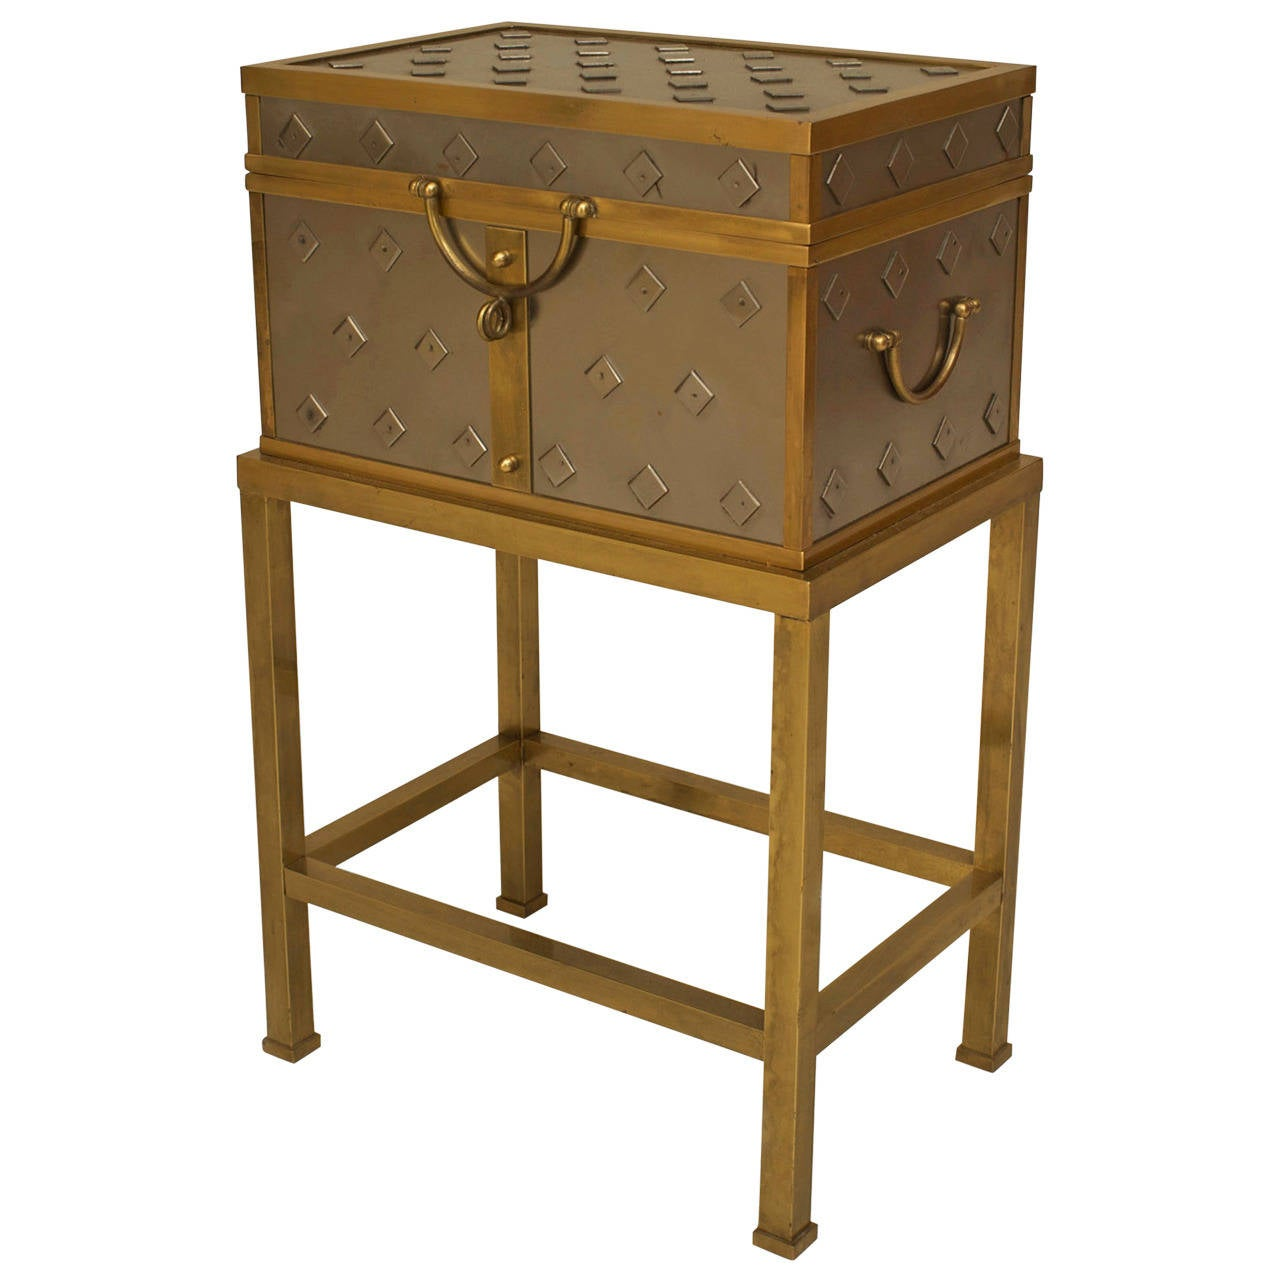 1940s Italian Silvered and Brass-Trimmed Box and Stand